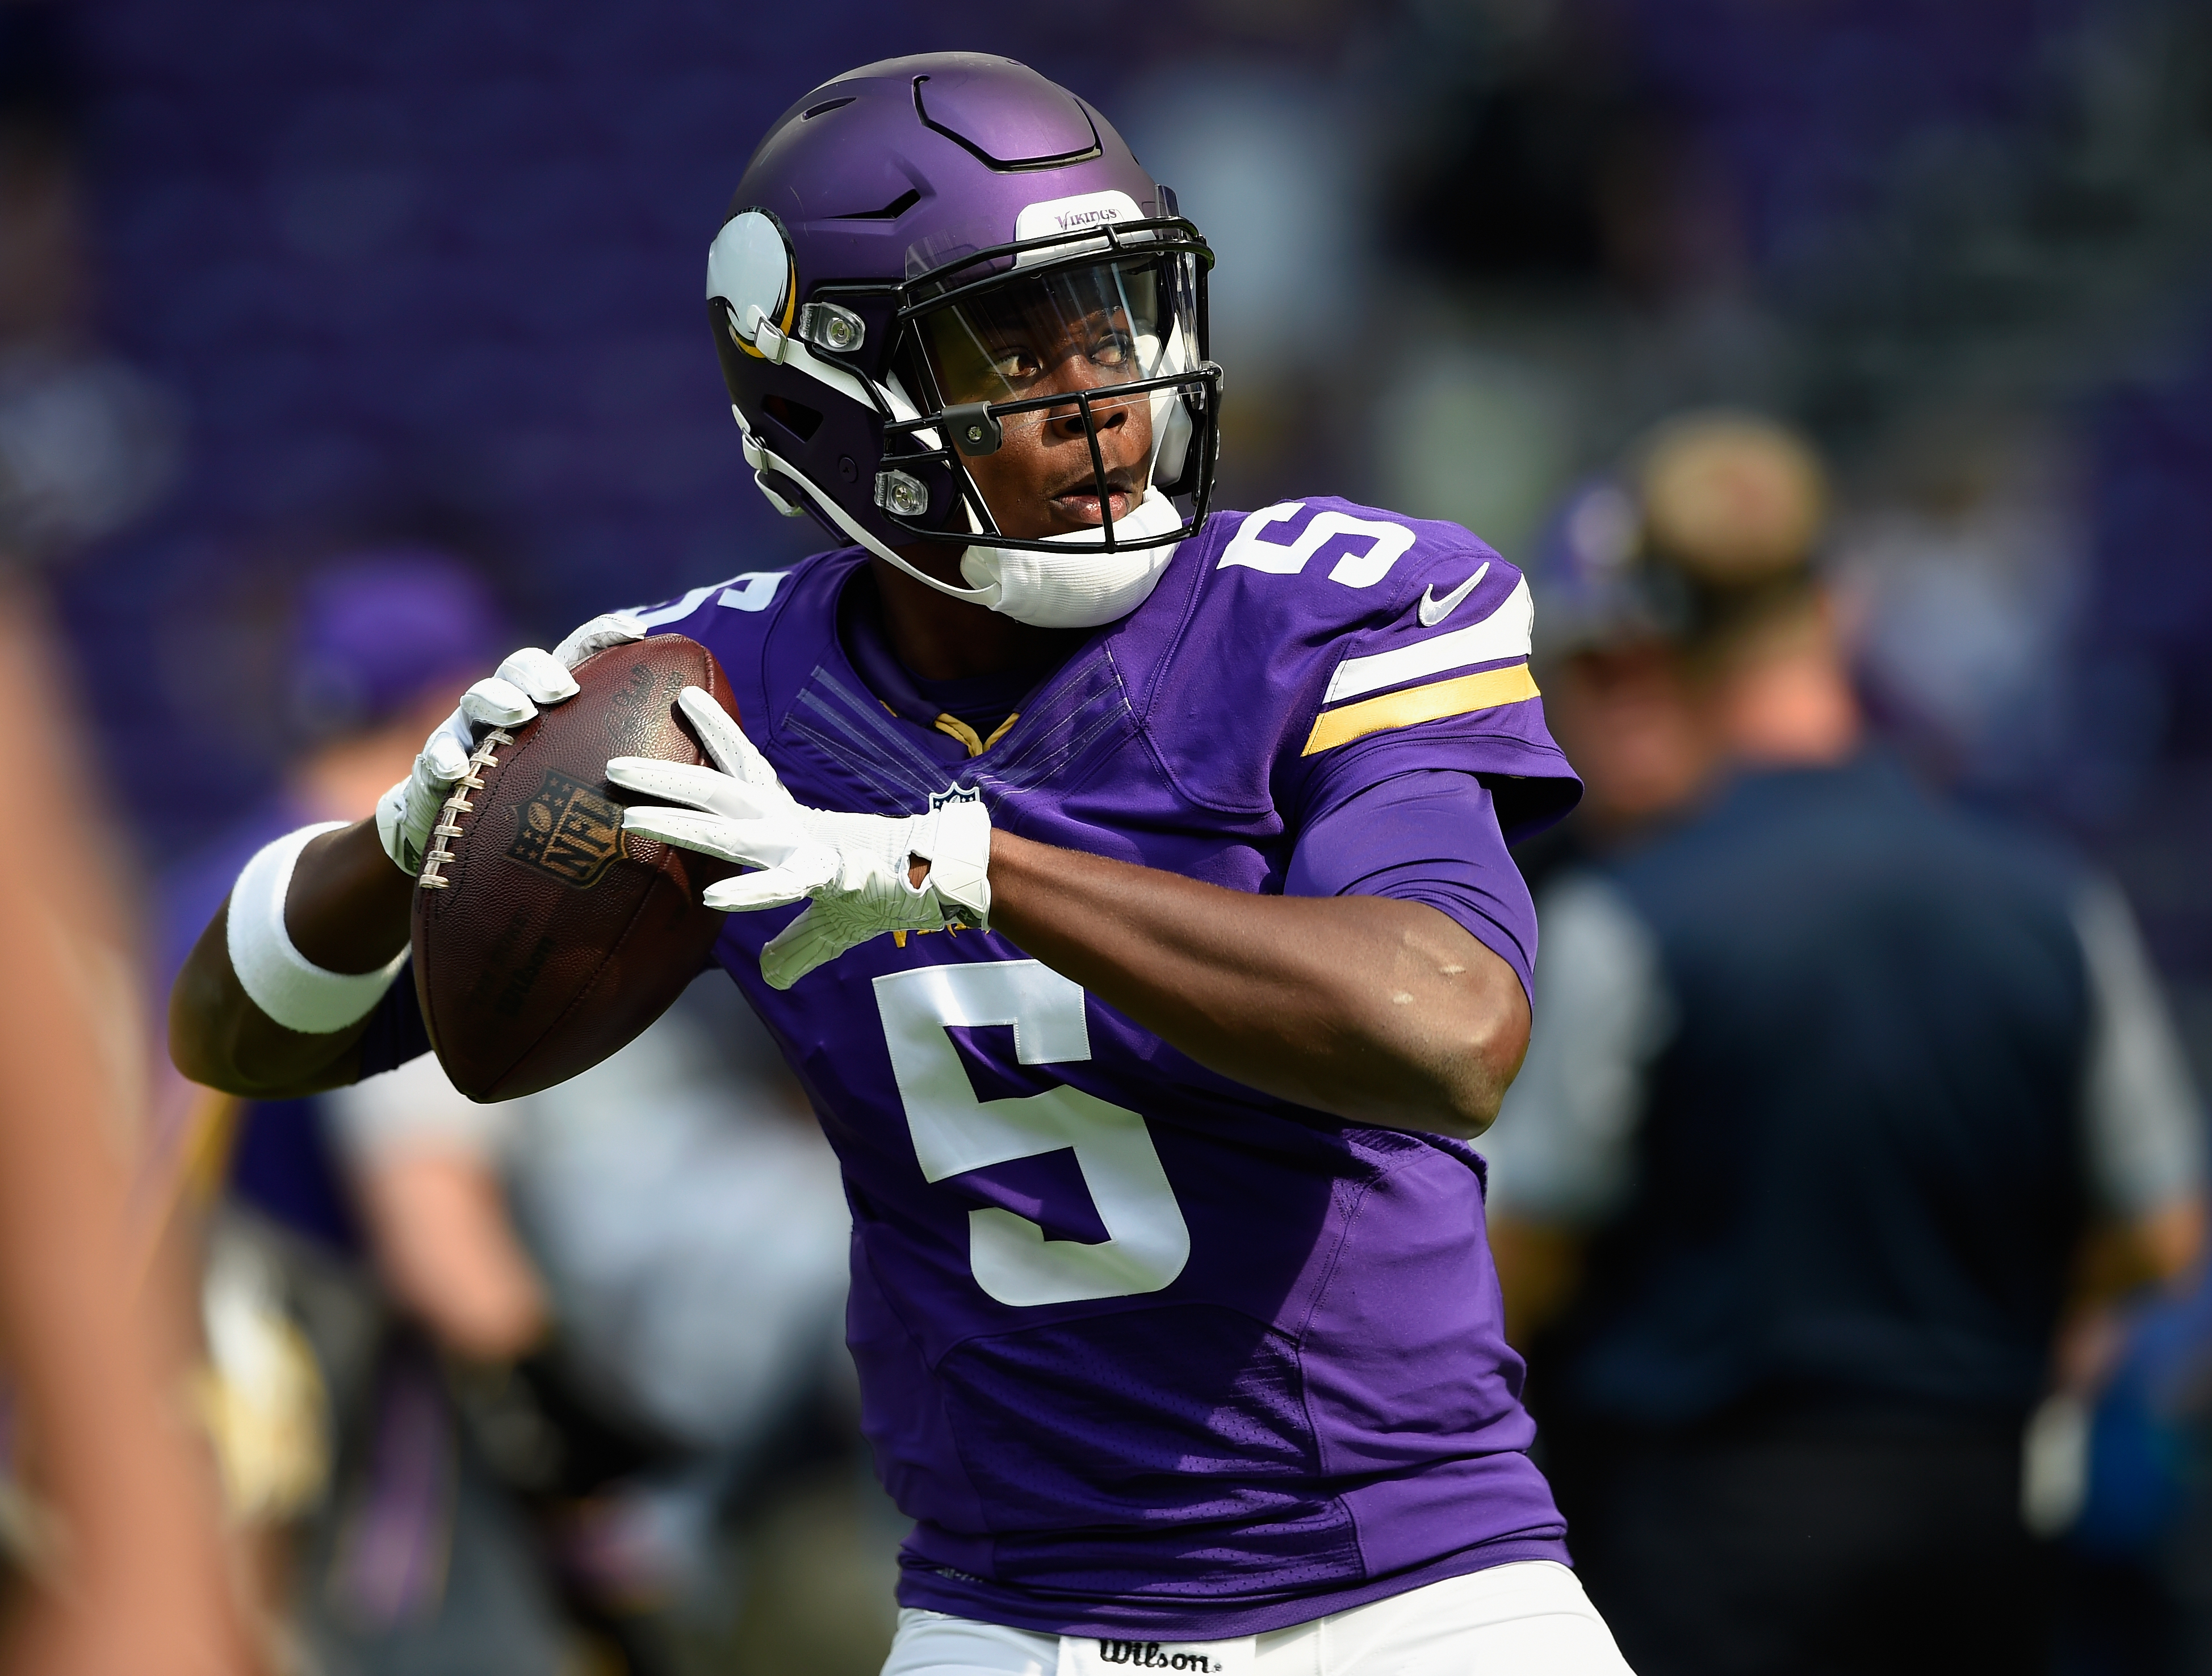 teddy bridgewater�s injury could have cost him his leg